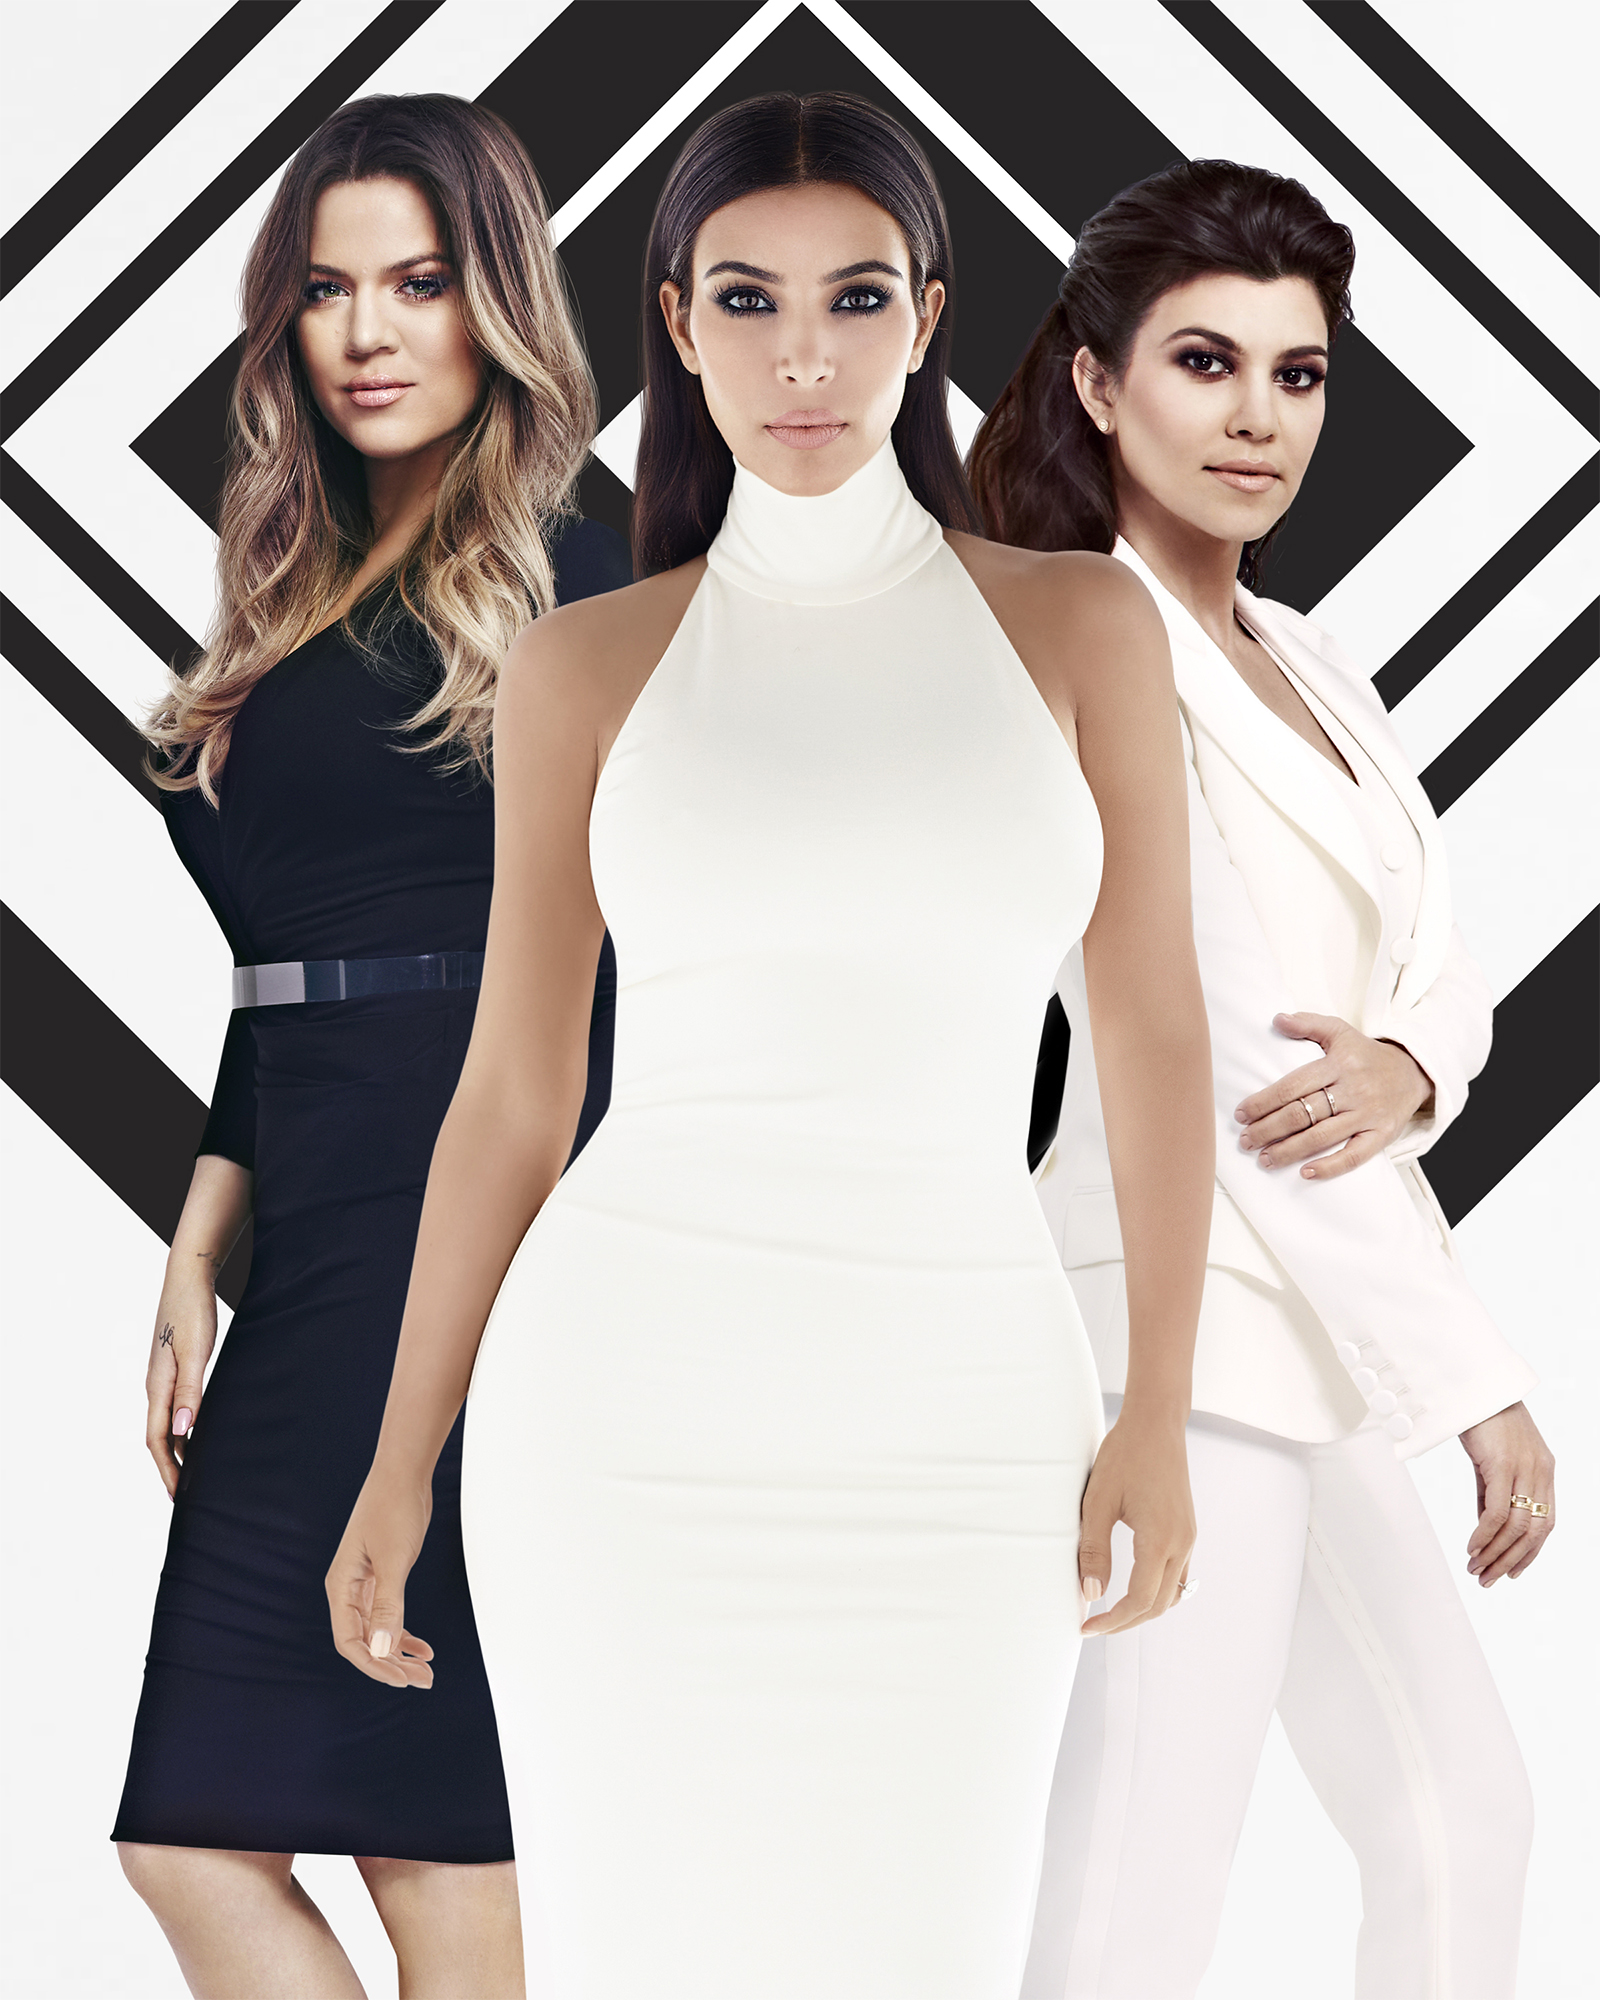 The Kardashians Re-Sign With E! for $150 Million